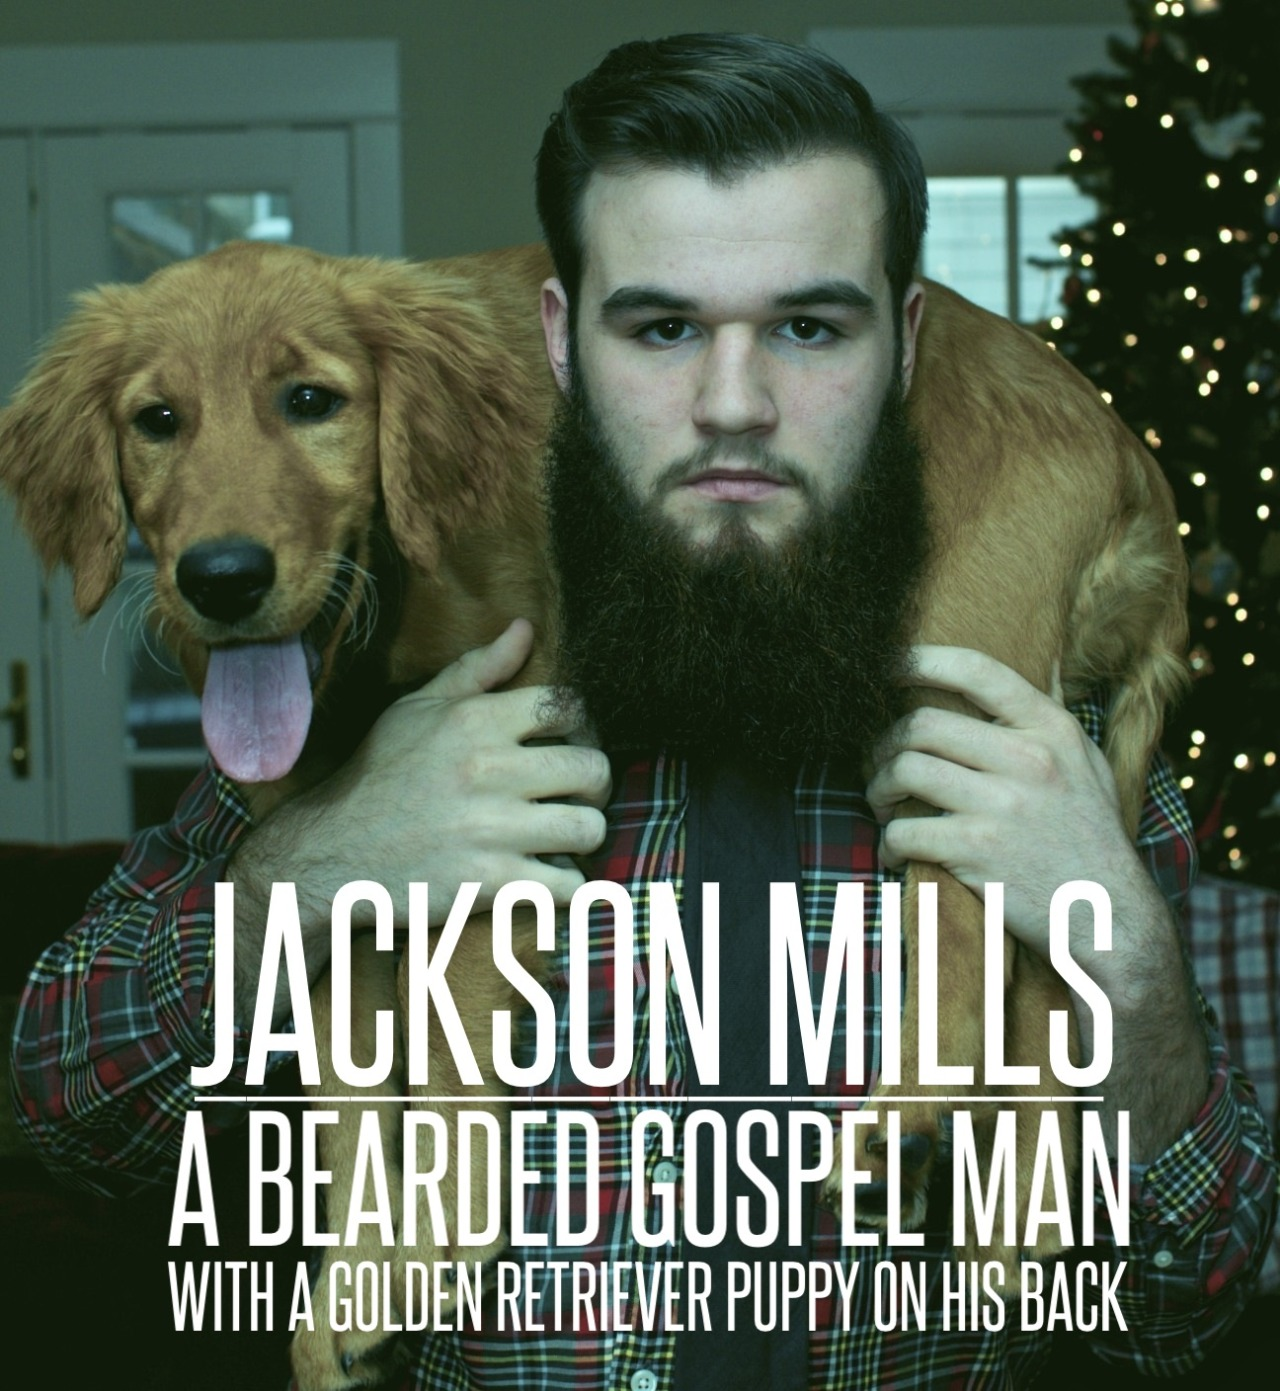 Jackson Mills is a bearded gospel man.